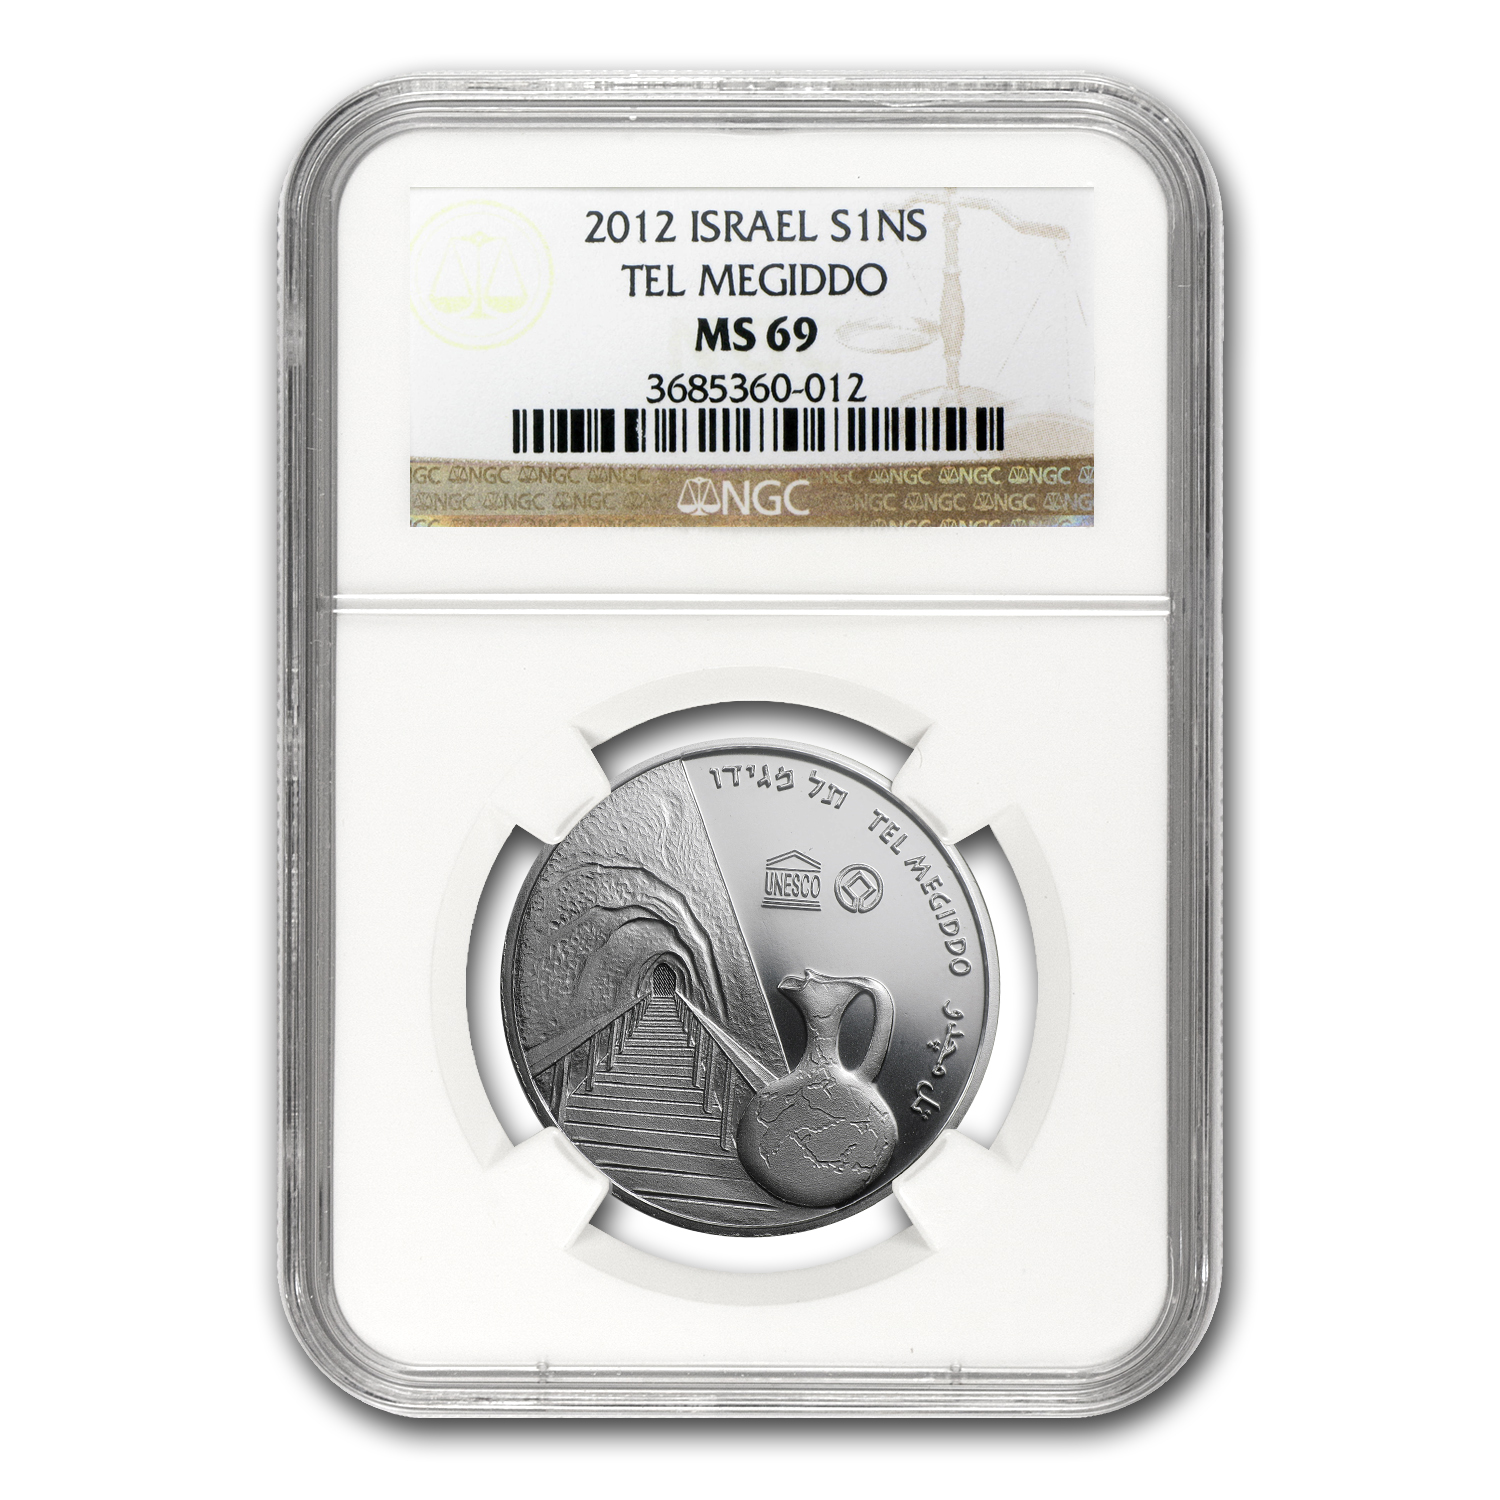 2012 Israel Tel Megiddo Proof-Like Silver 1 NIS Coin MS-69 NGC